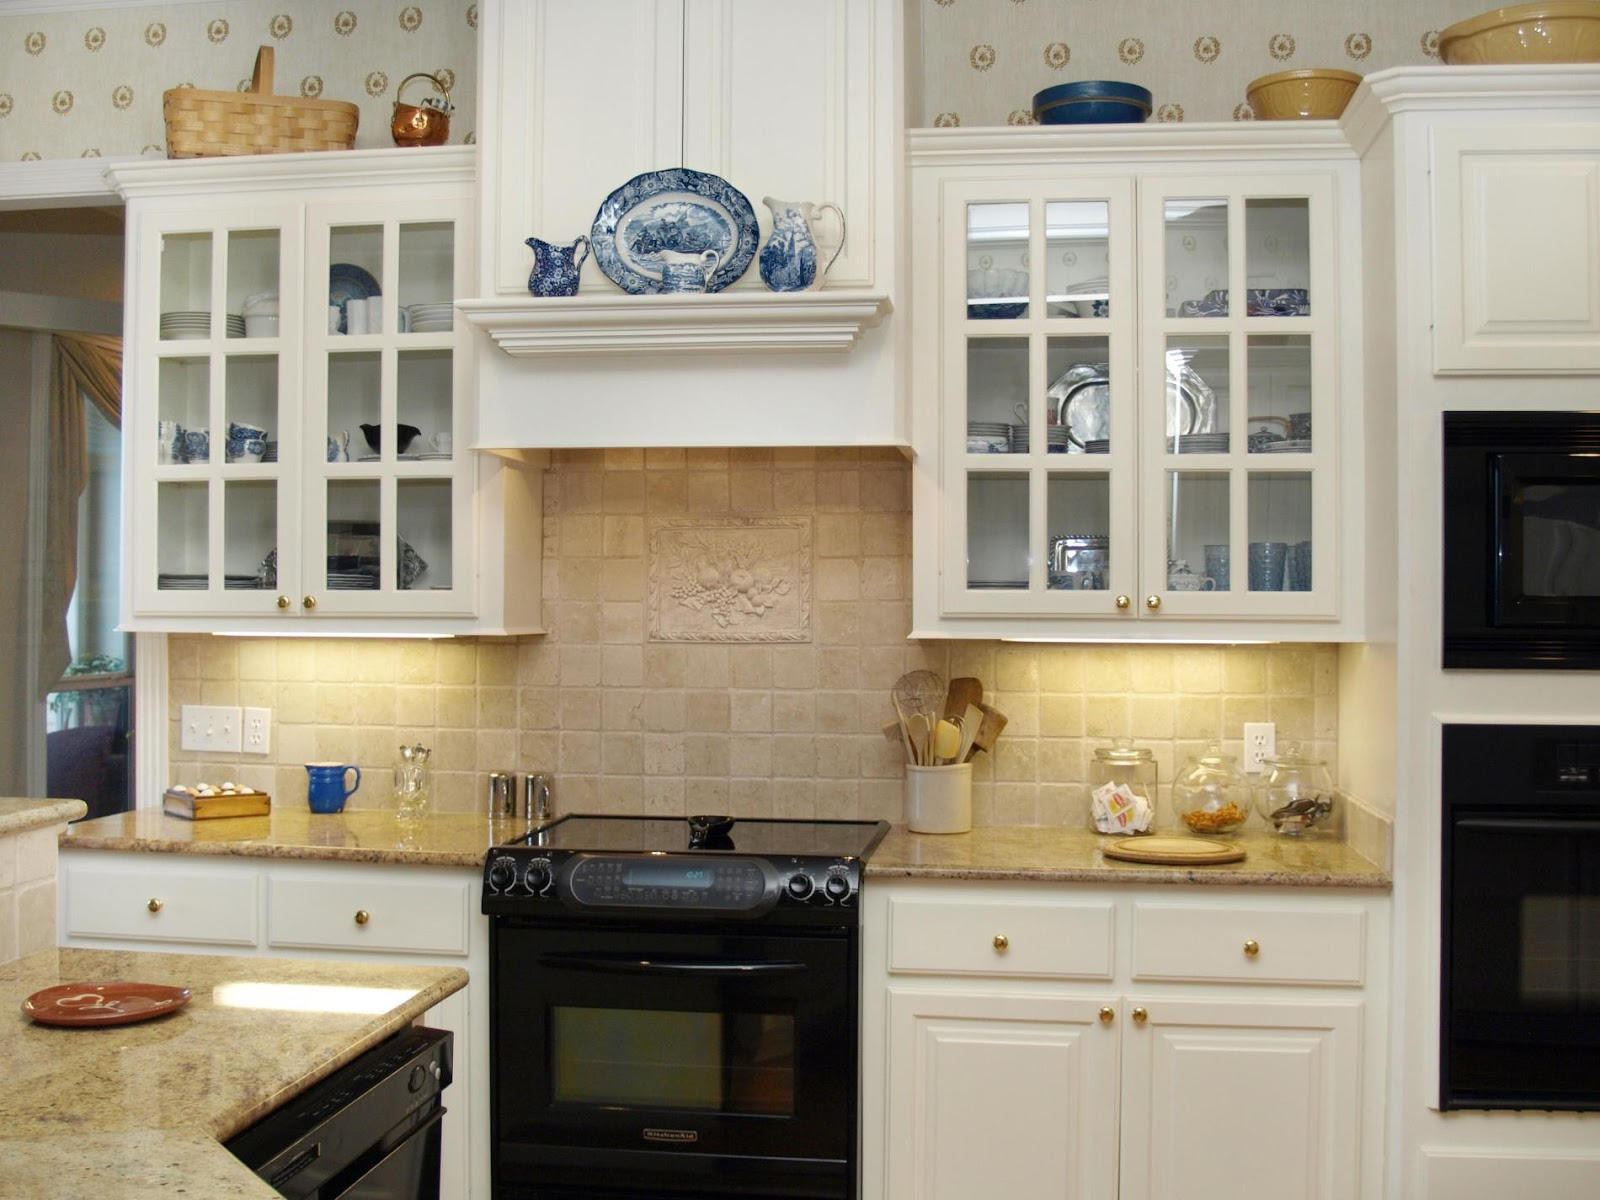 Kitchen shelves decoration dream house experience for Kitchen decorating ideas pictures